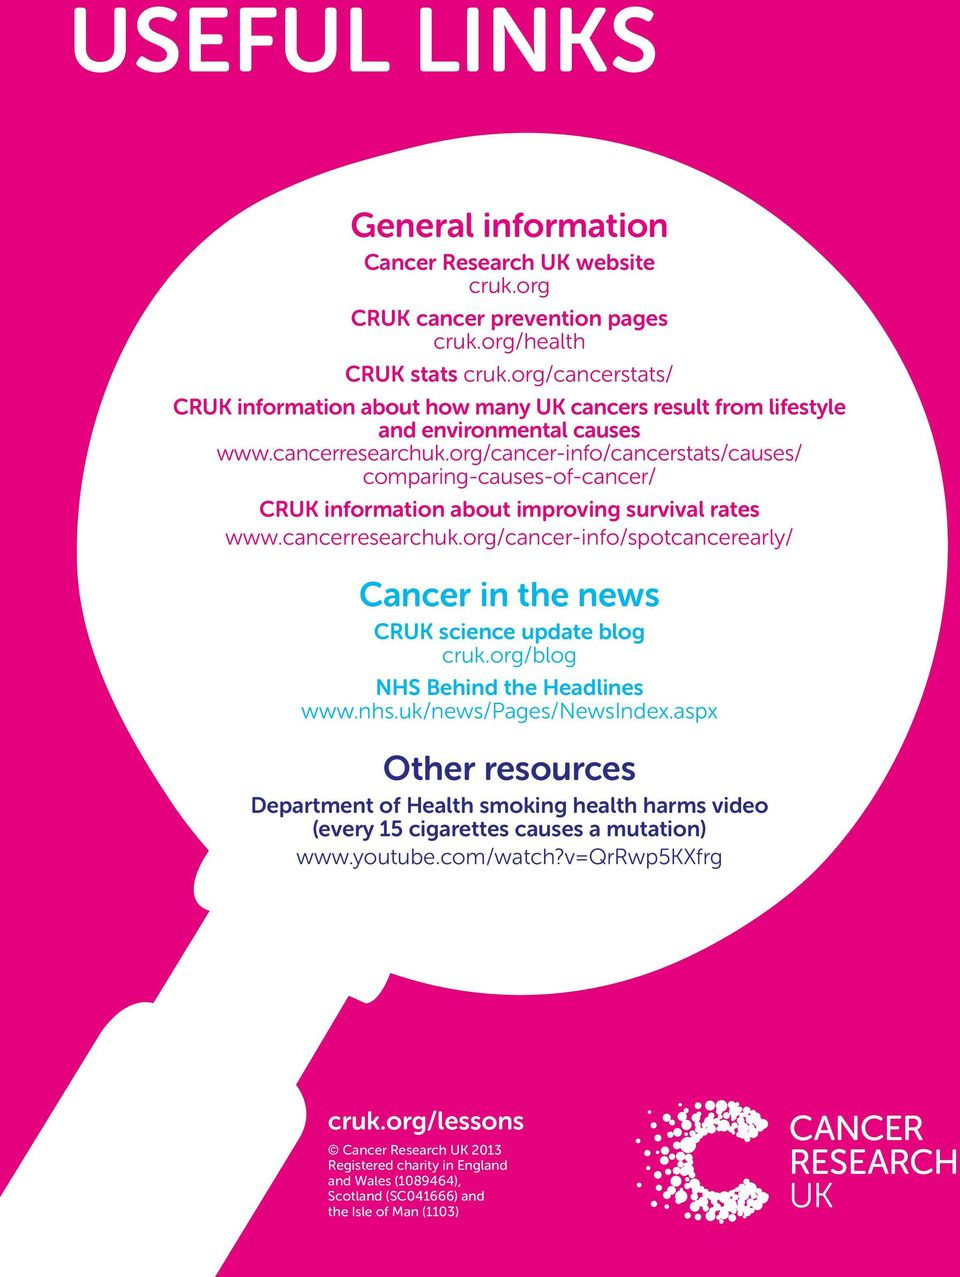 org/cancer-info/cancerstats/causes/ comparing-causes-of-cancer/ CRUK information about improving survival rates www.cancerresearchuk.